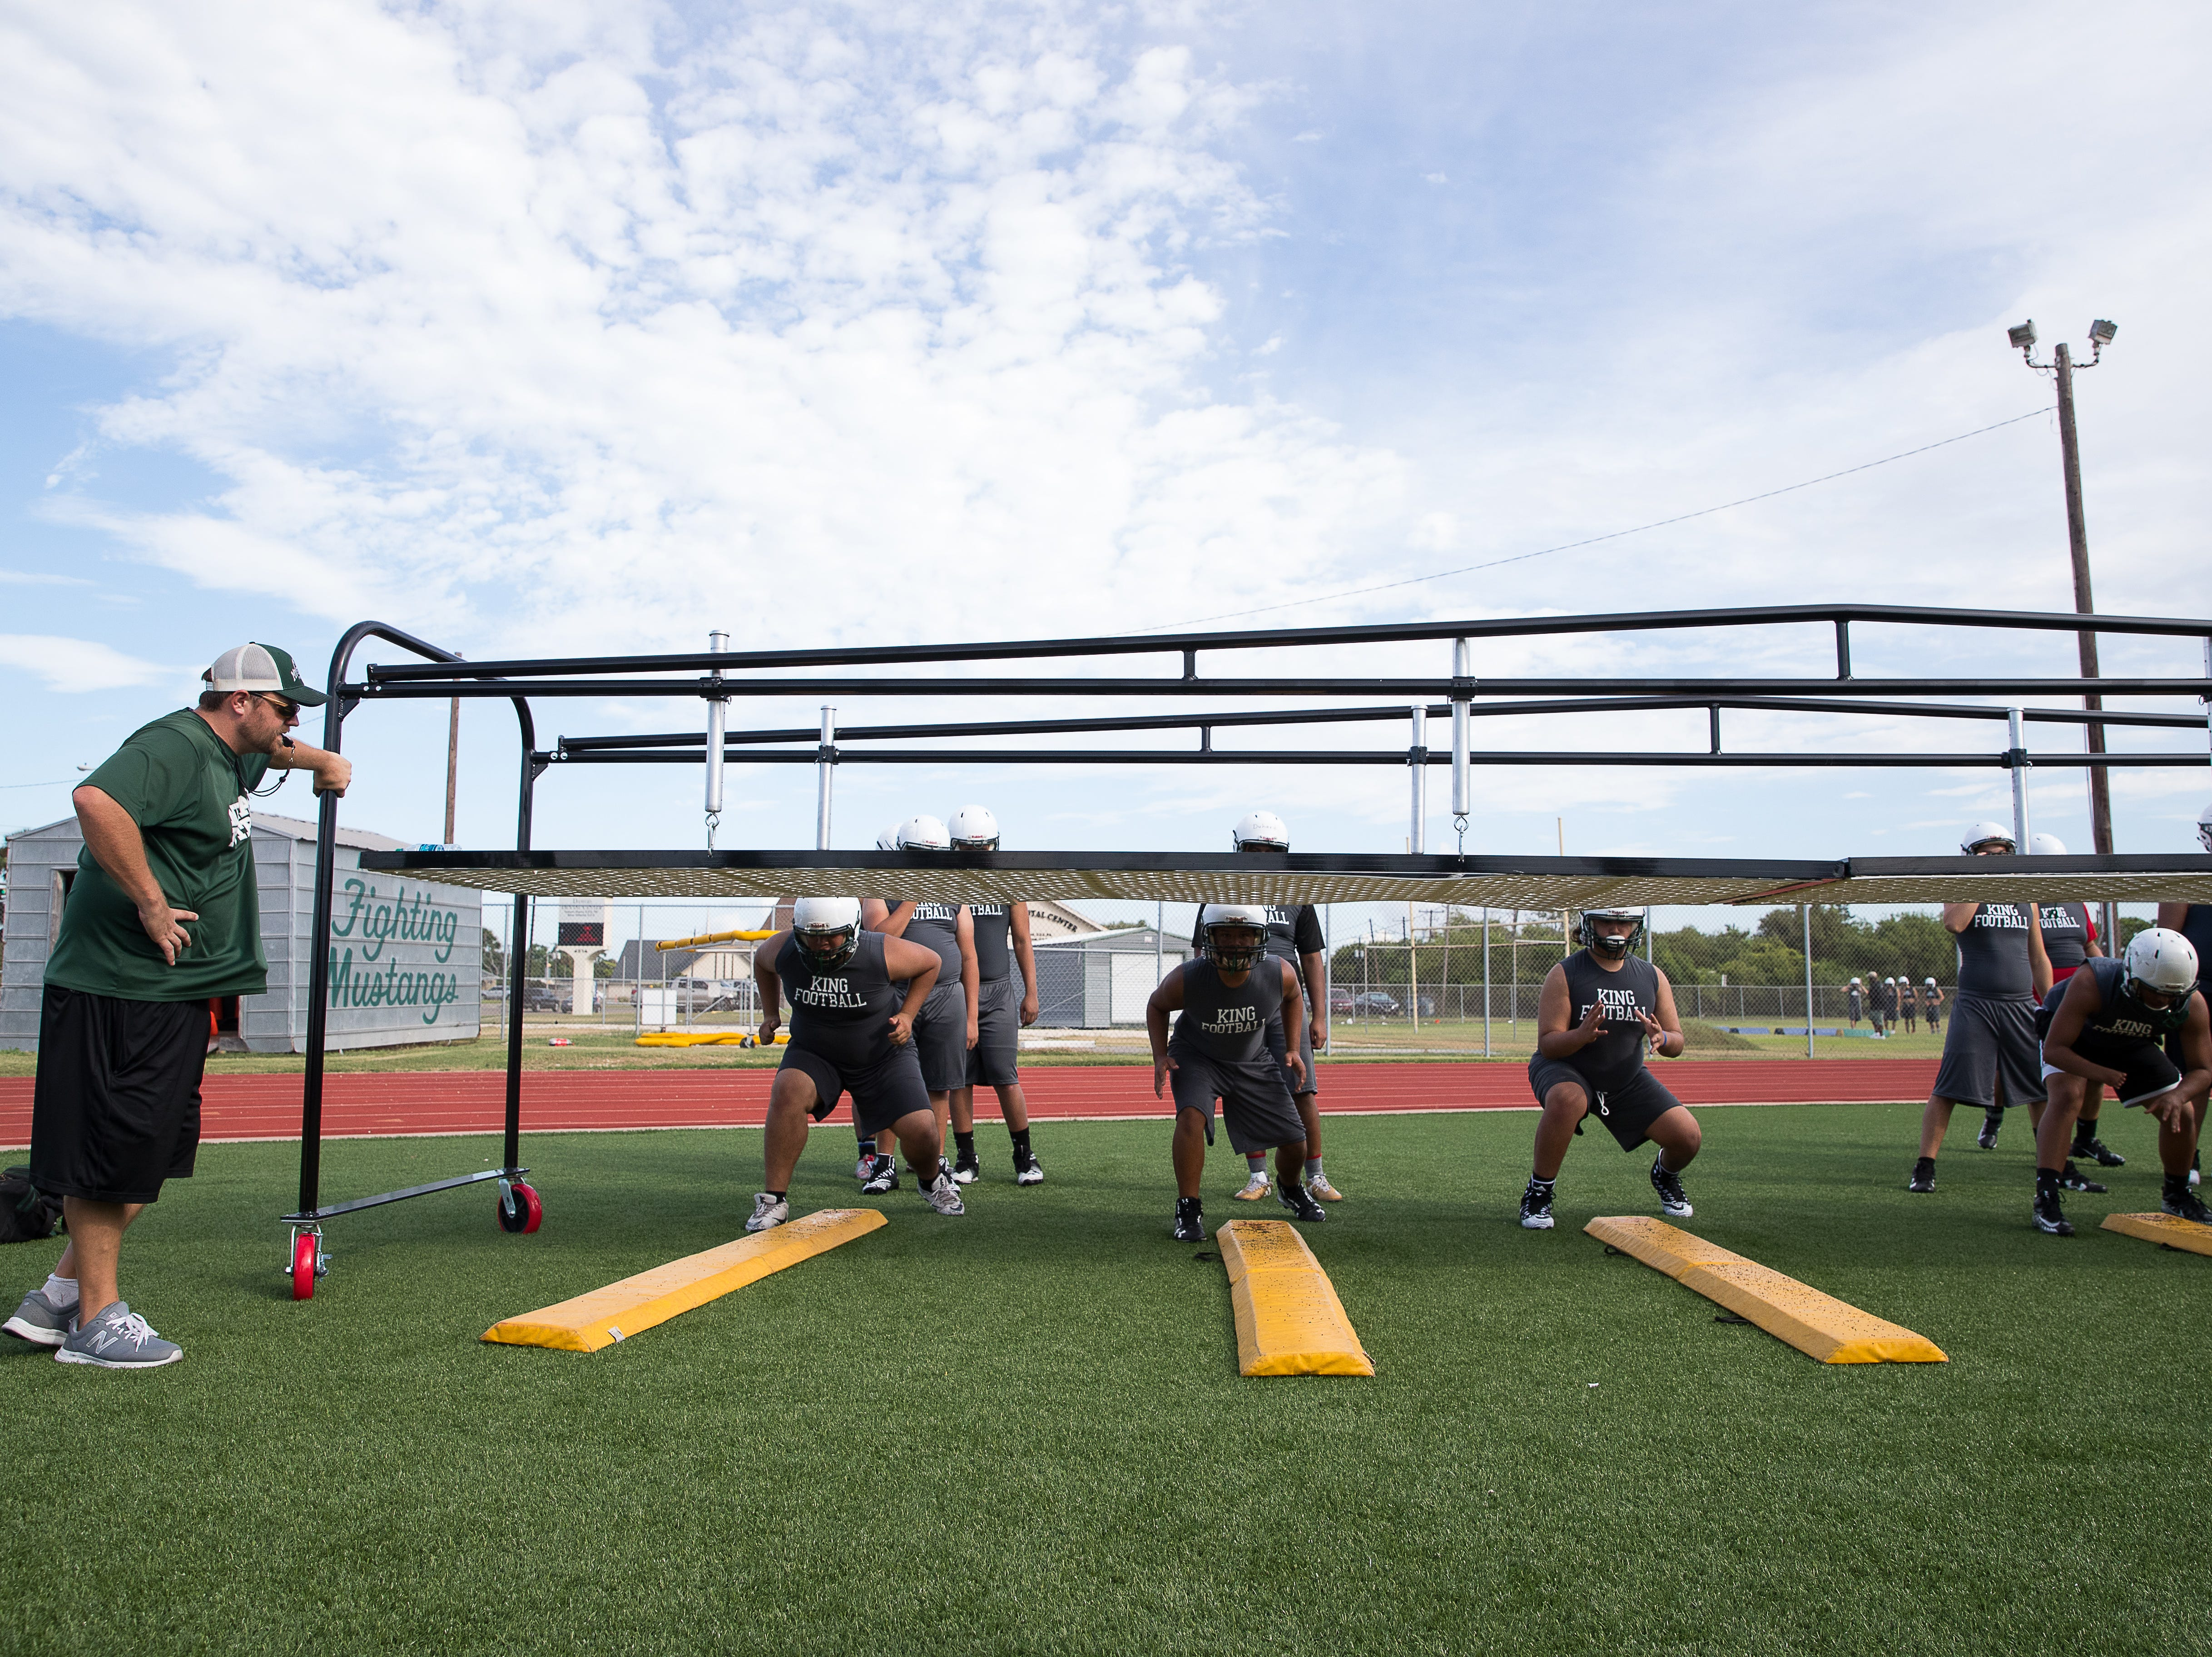 King football players run drills on the first day of practice for the 2018 season at King High School on Monday, Aug. 6, 2018.